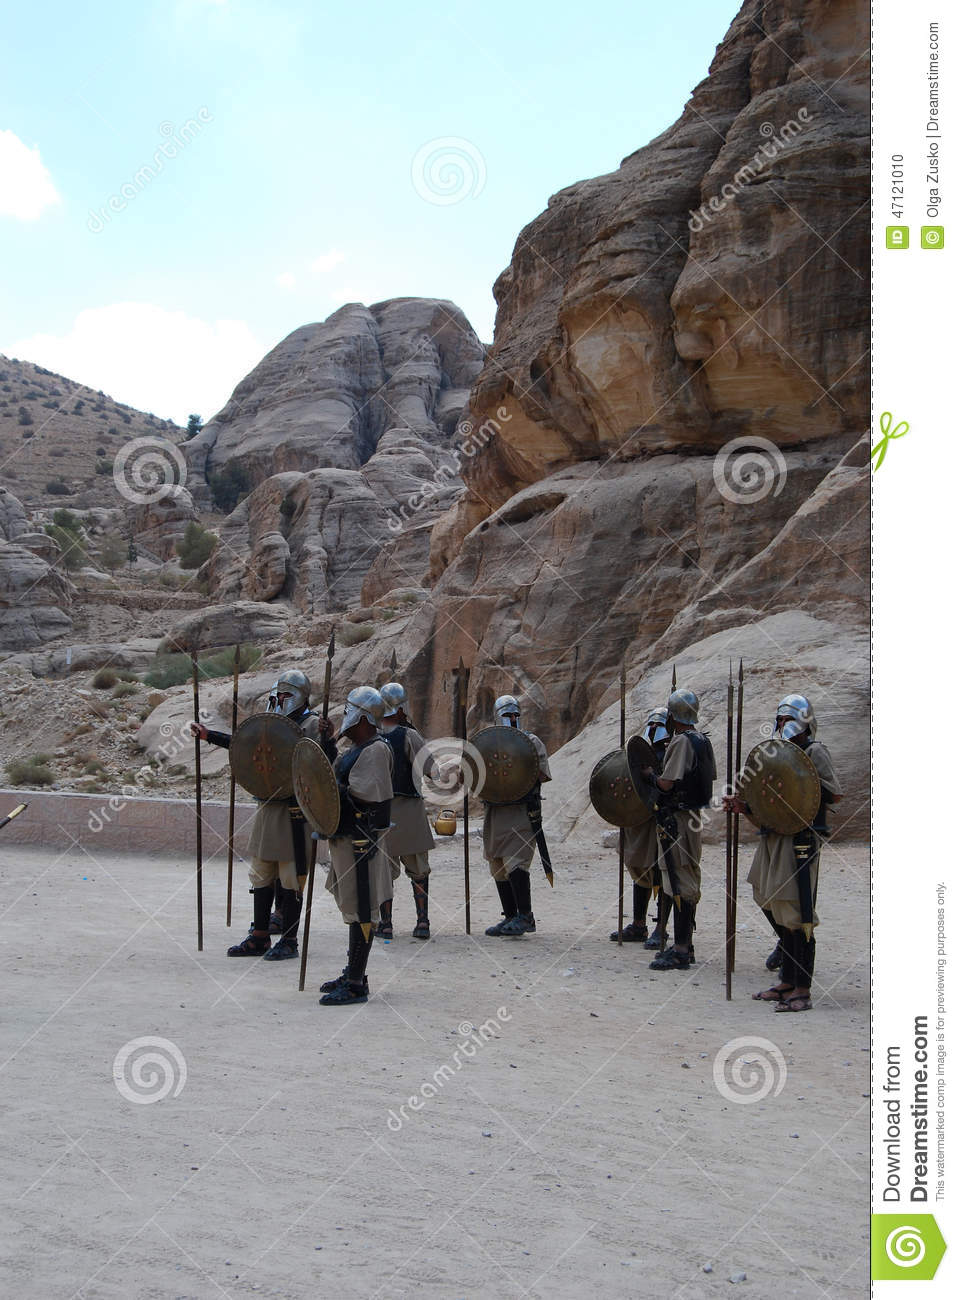 Warriors in Perta, Jordan